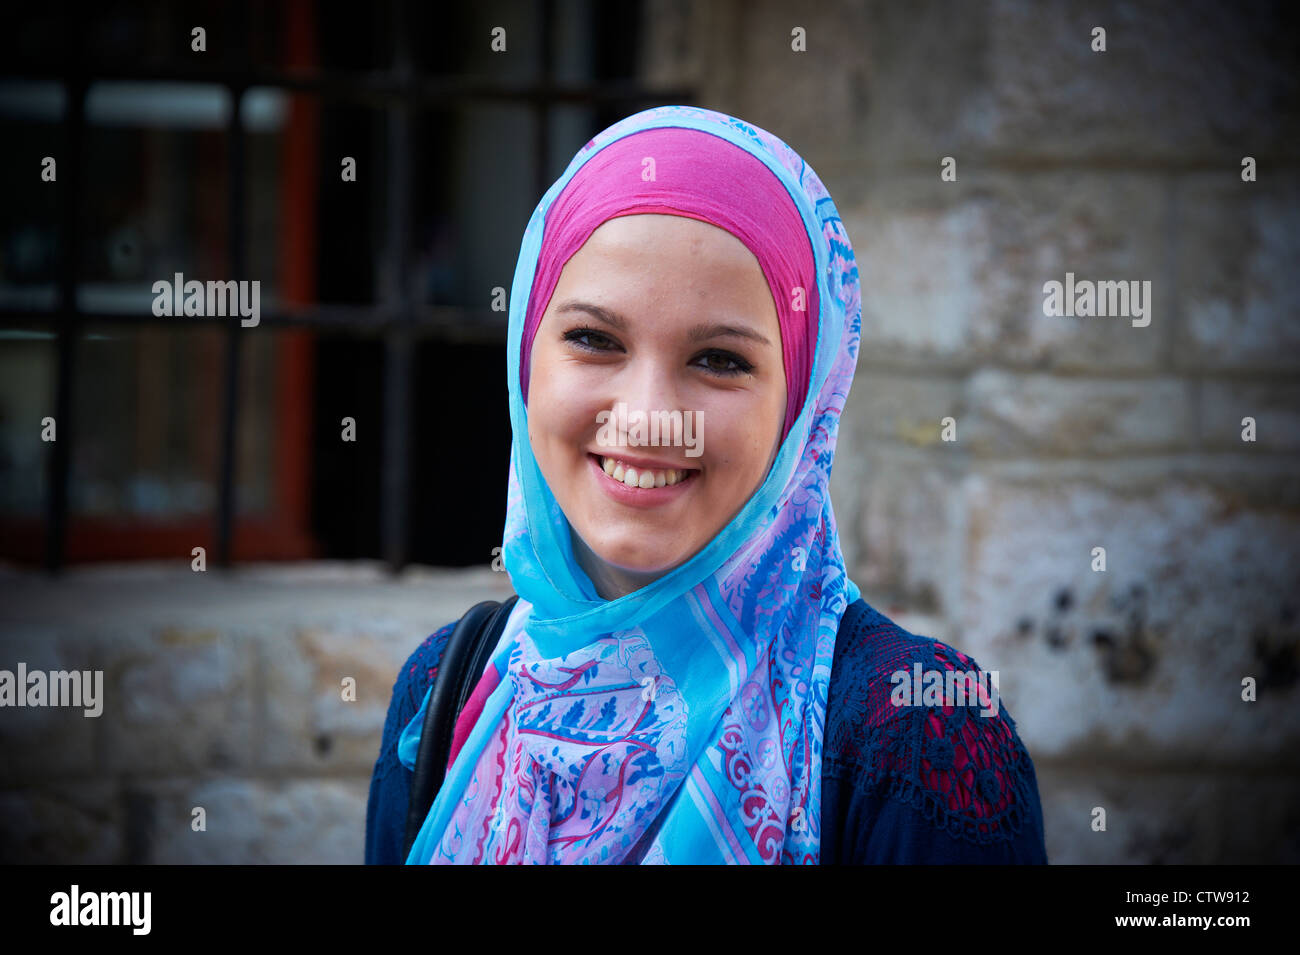 lothair muslim single women Find attractive women from somalia on lovehabibi - the top destination on the web for meeting the somali woman of your dreams.